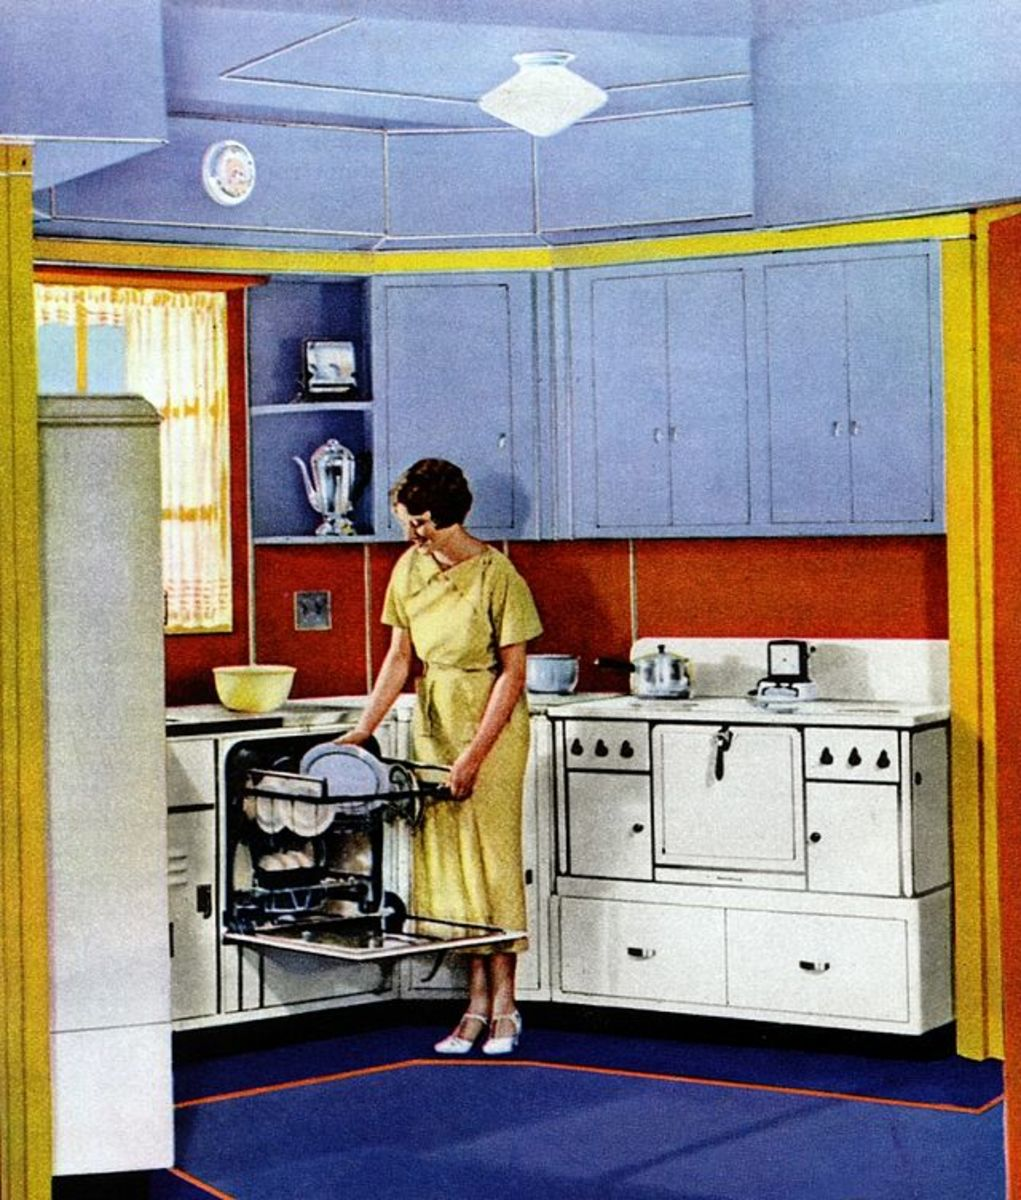 Blue and yellow look so fresh in this vintage kitchen!